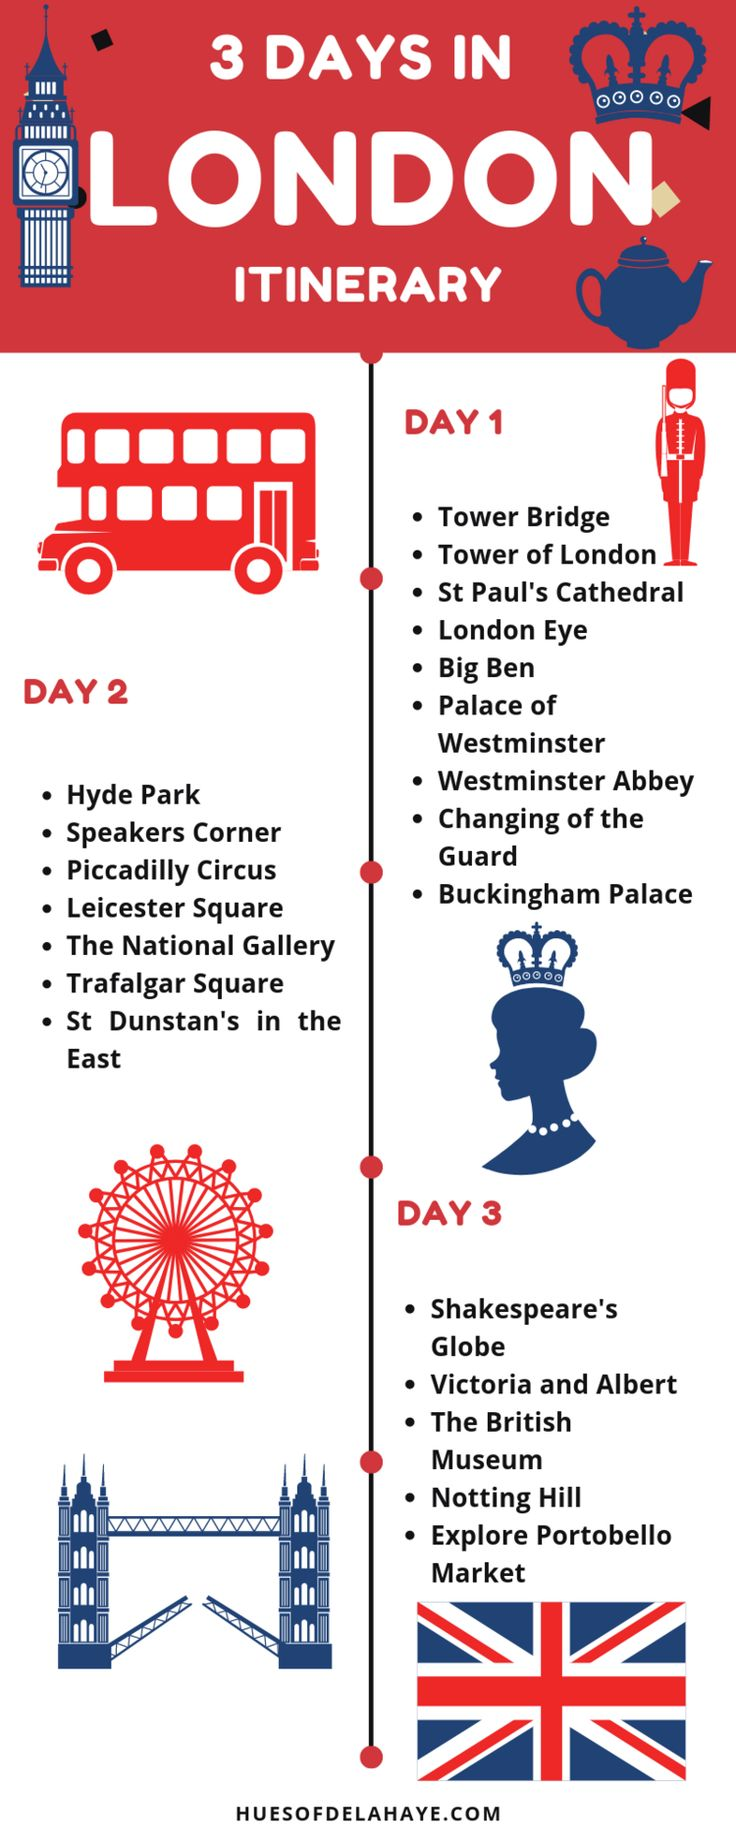 3 Days in London Itinerary: The Perfect 72 Hour London Itinerary